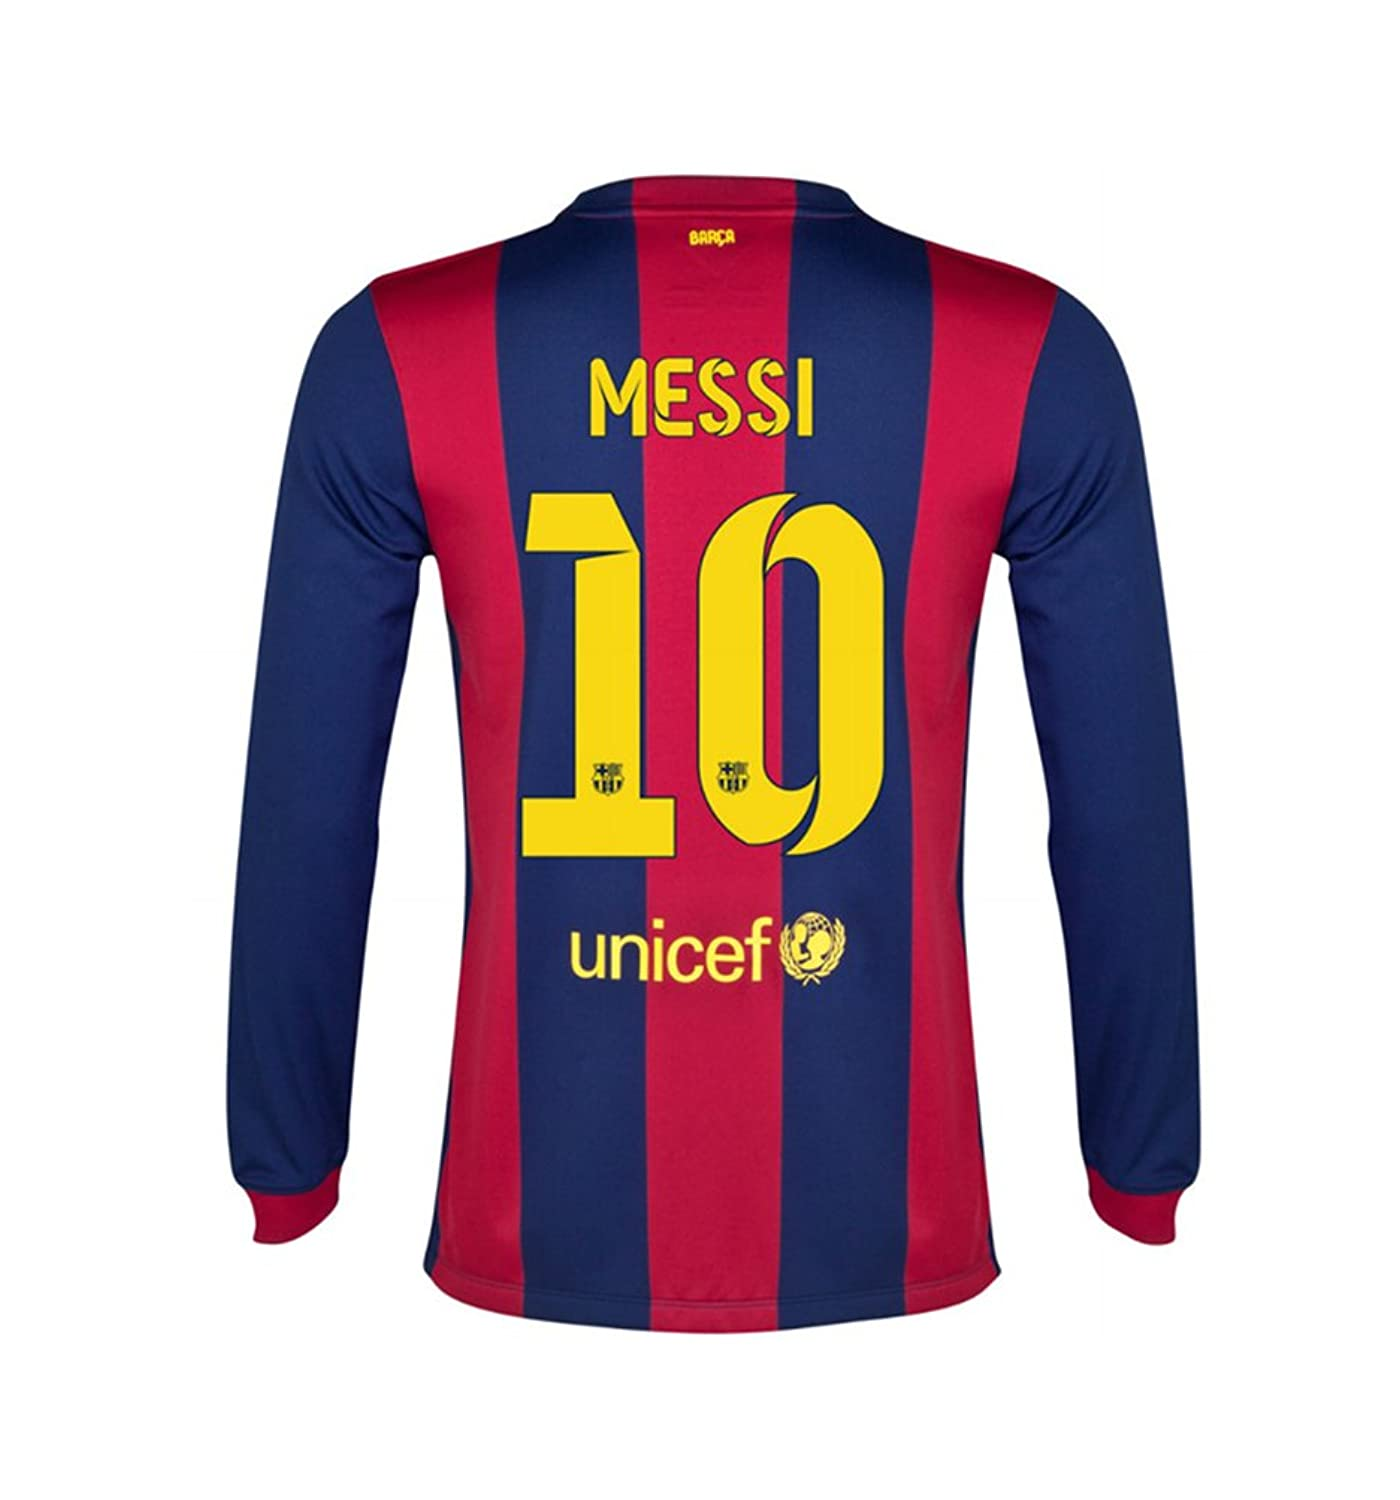 a27befc3d729 ... KIDS JERSEY (10 FC Barcelona Shirt Amazon.com MESSI 10 Nike FC  Barcelona Home Men Jersey 2014-2015 Long Sleeve ...